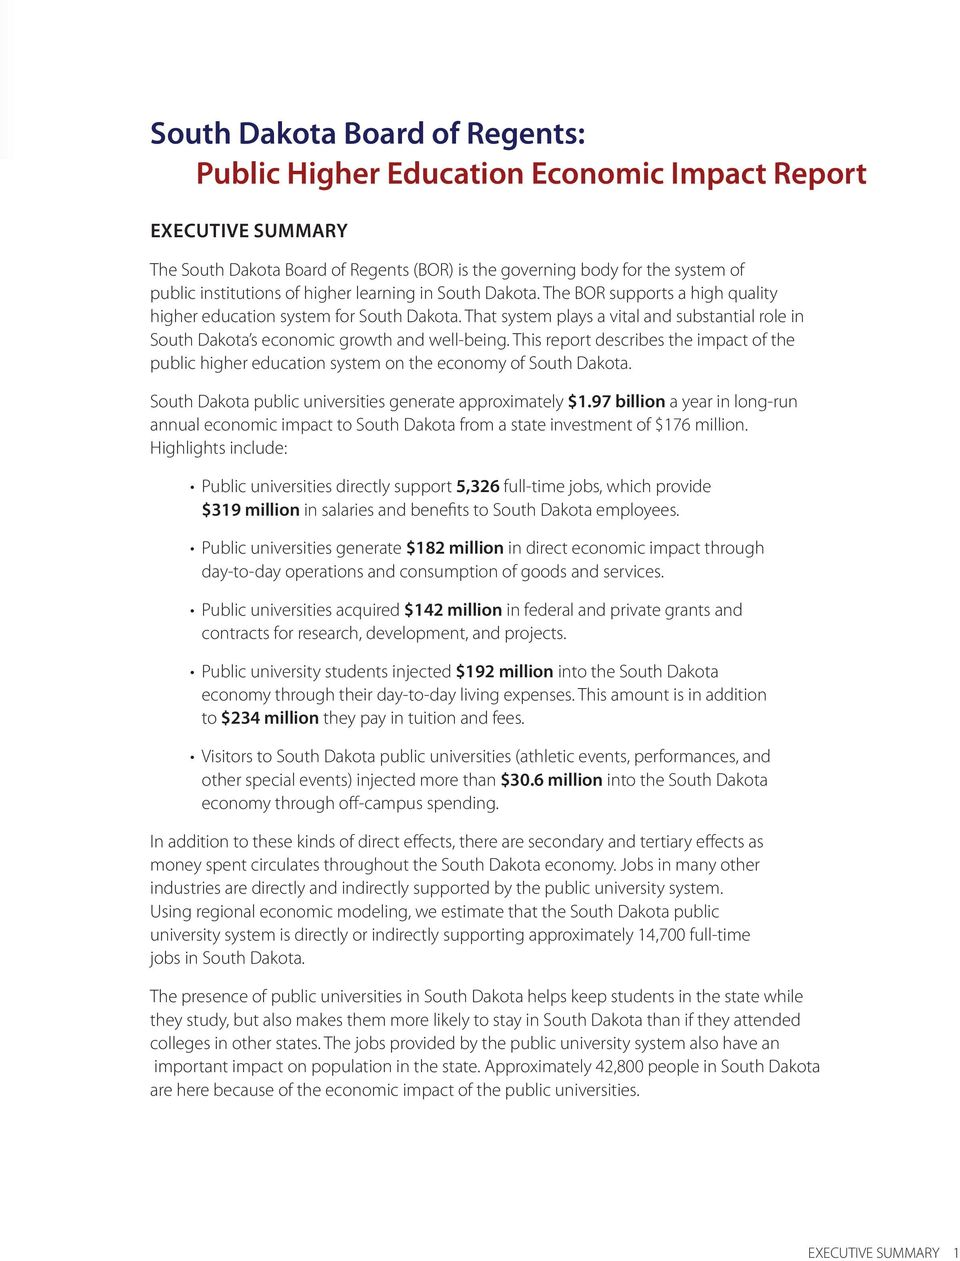 That system plays a vital and substantial role in South Dakota s economic growth and well-being. This report describes the impact of the public higher education system on the economy of South Dakota.